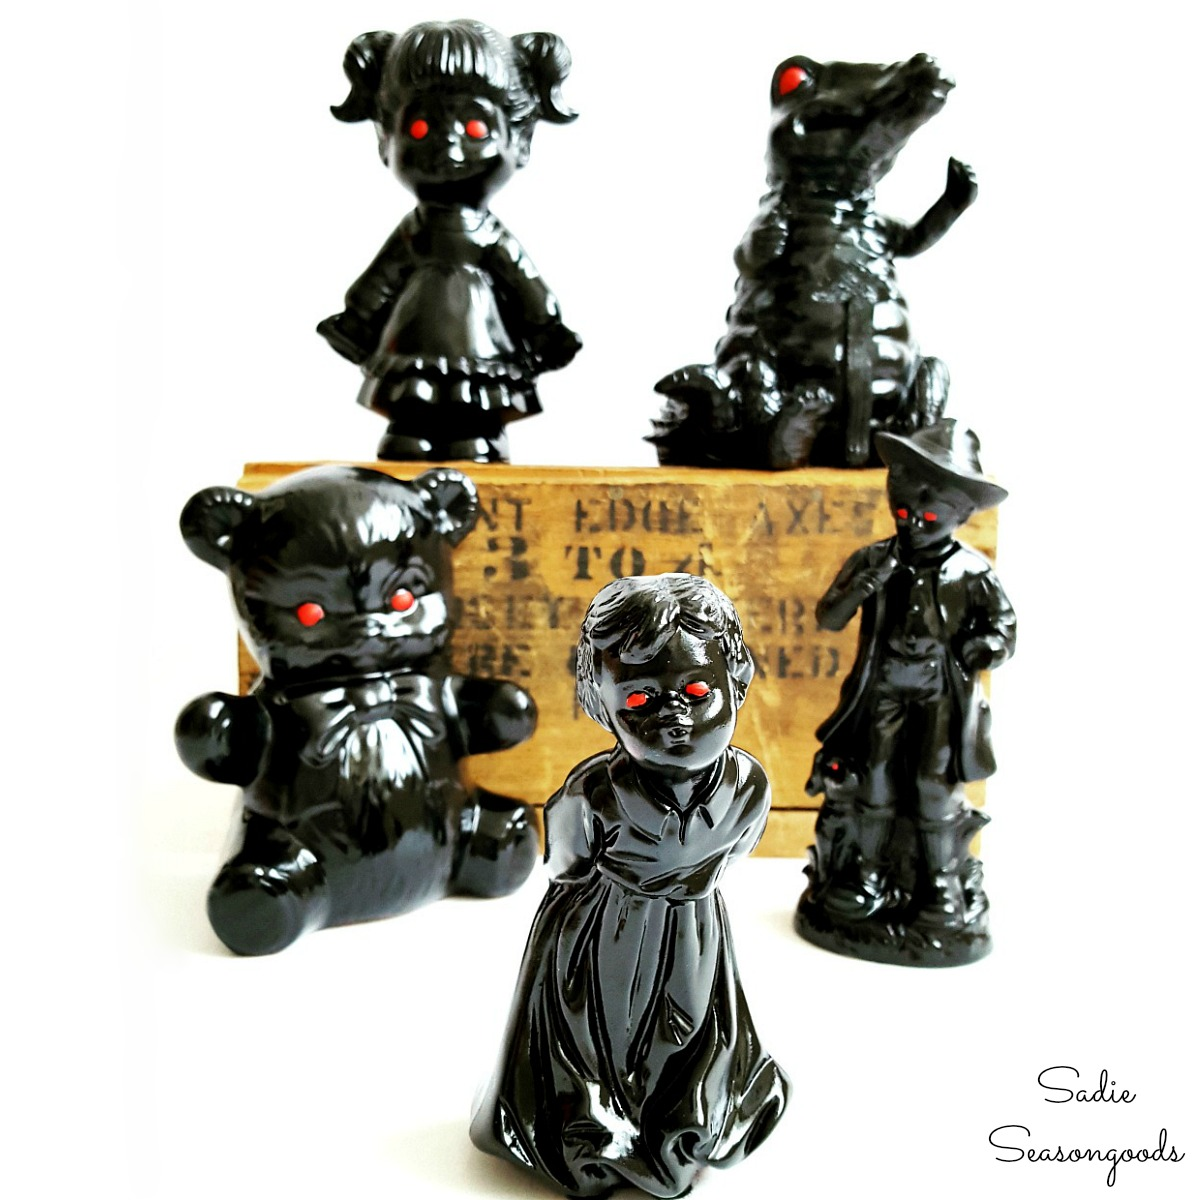 Halloween Figurines for Scary Halloween Decorations